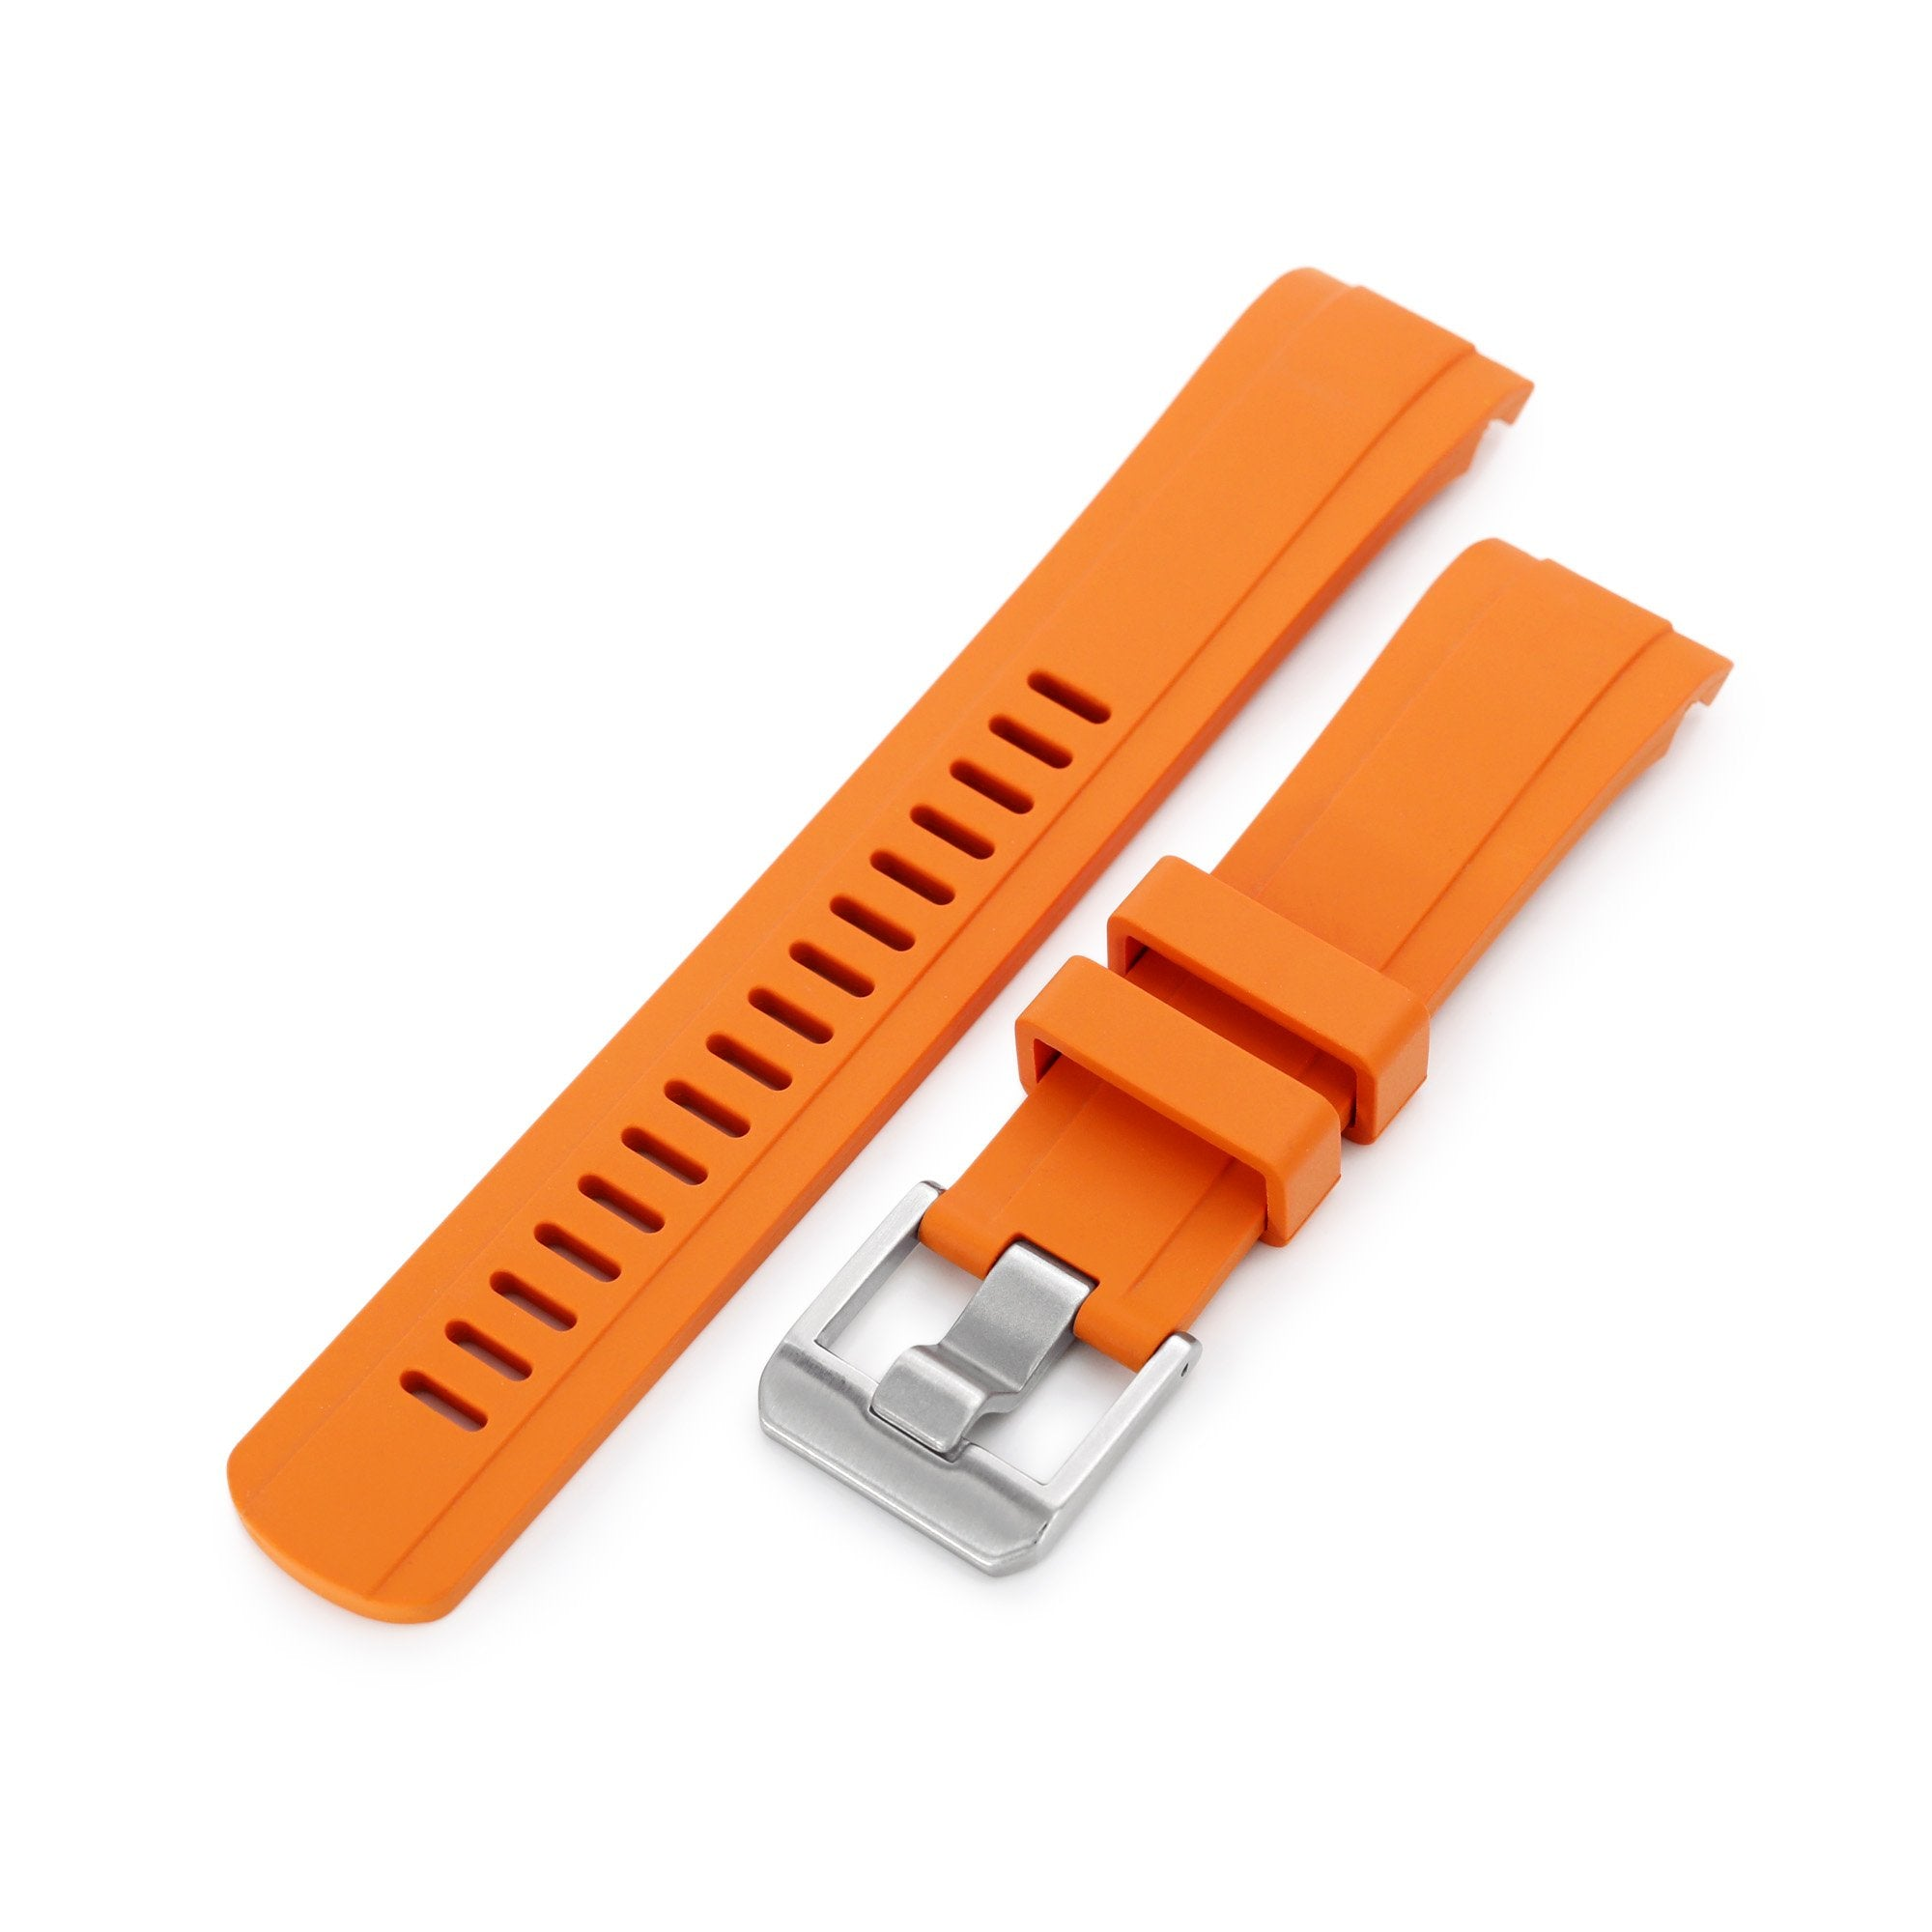 22mm Crafter Blue CB10 Orange Rubber Curved Lug Watch Band for Seiko SKX007 Strapcode Watch Bands